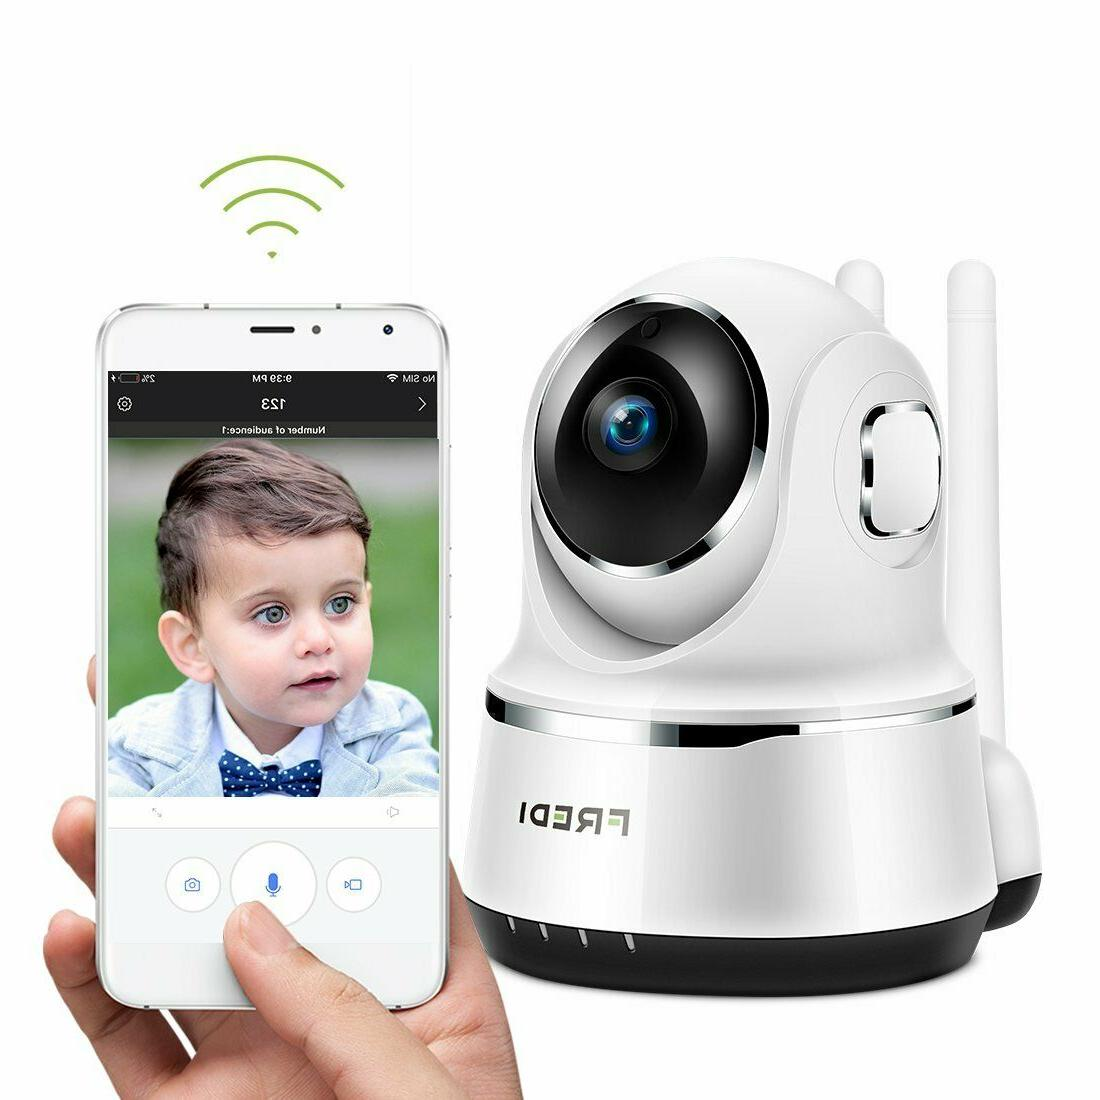 FREDI Wireless Baby Monitor Security IP Home 720p WiFi Camer